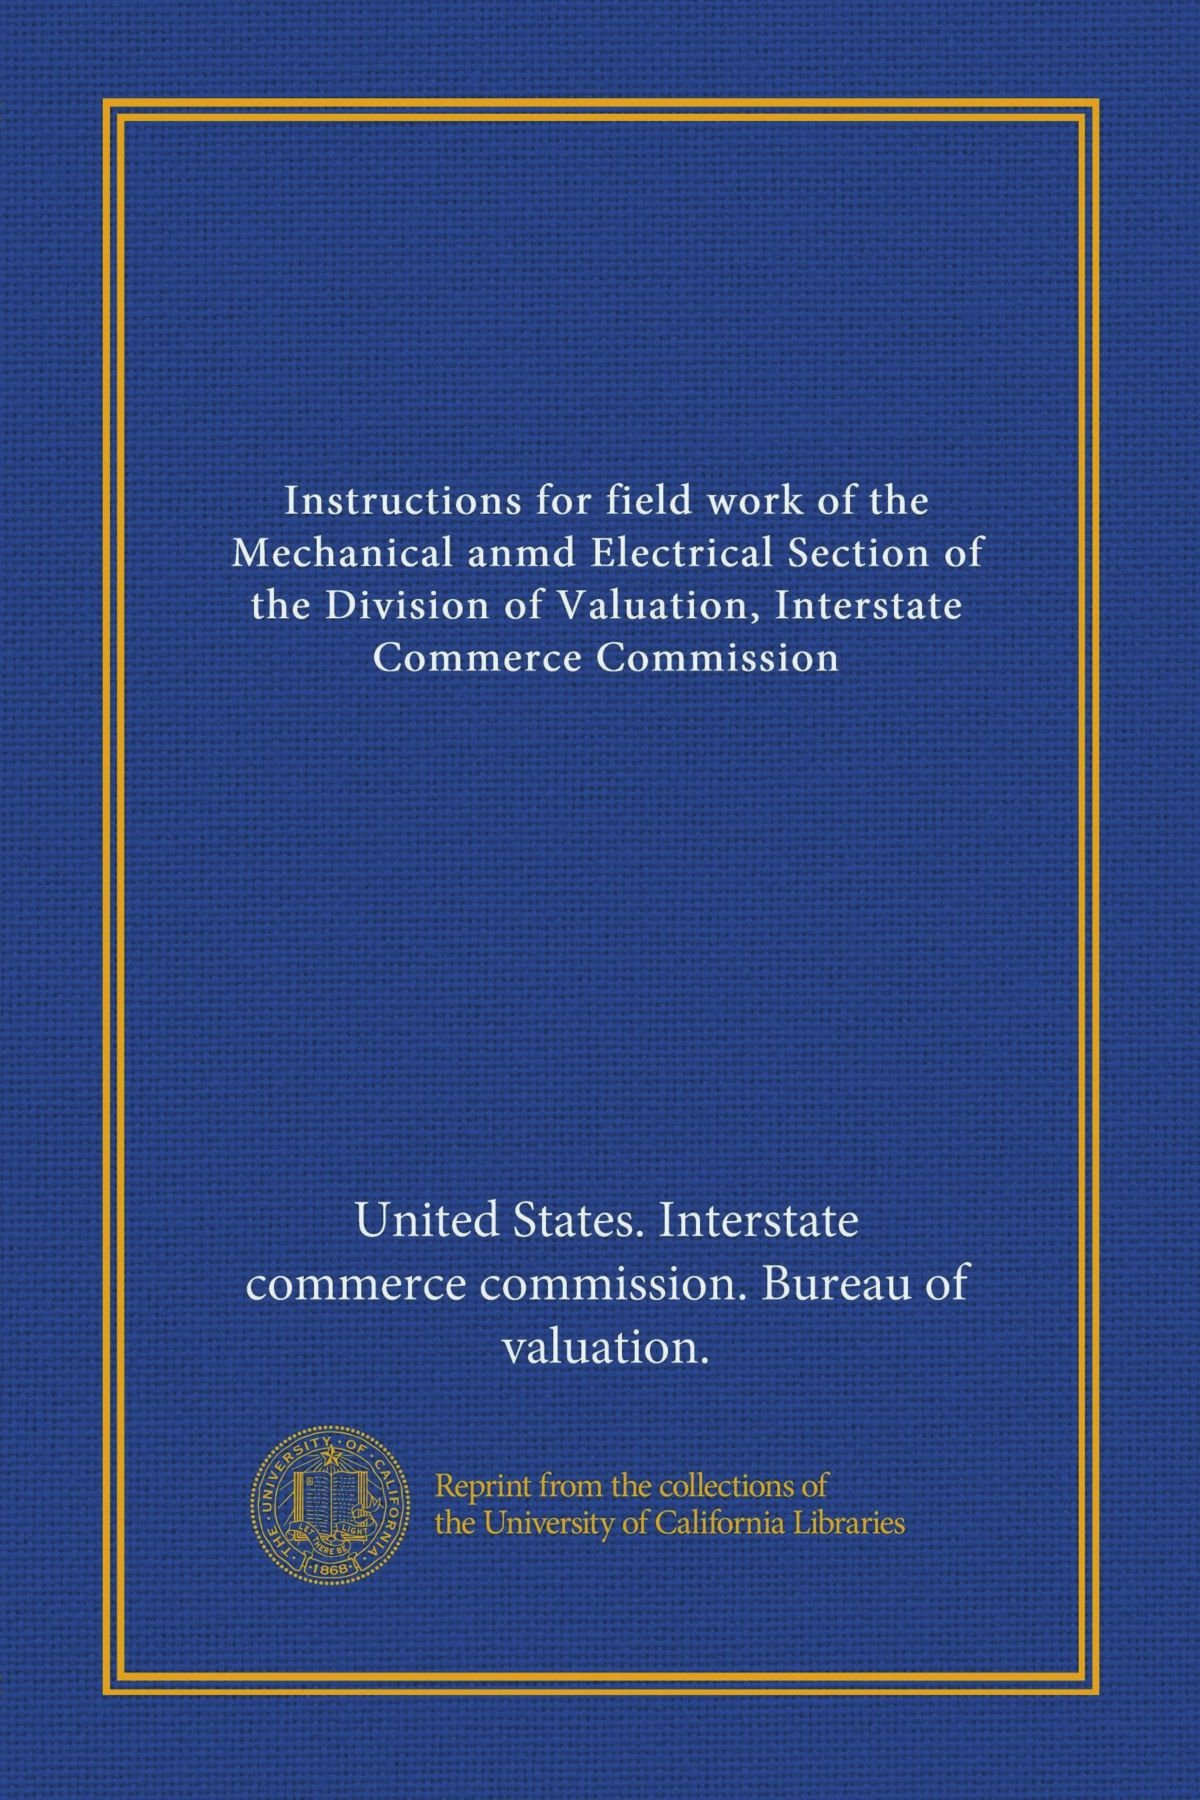 Download Instructions for field work of the Mechanical anmd Electrical Section of the Division of Valuation, Interstate Commerce Commission pdf